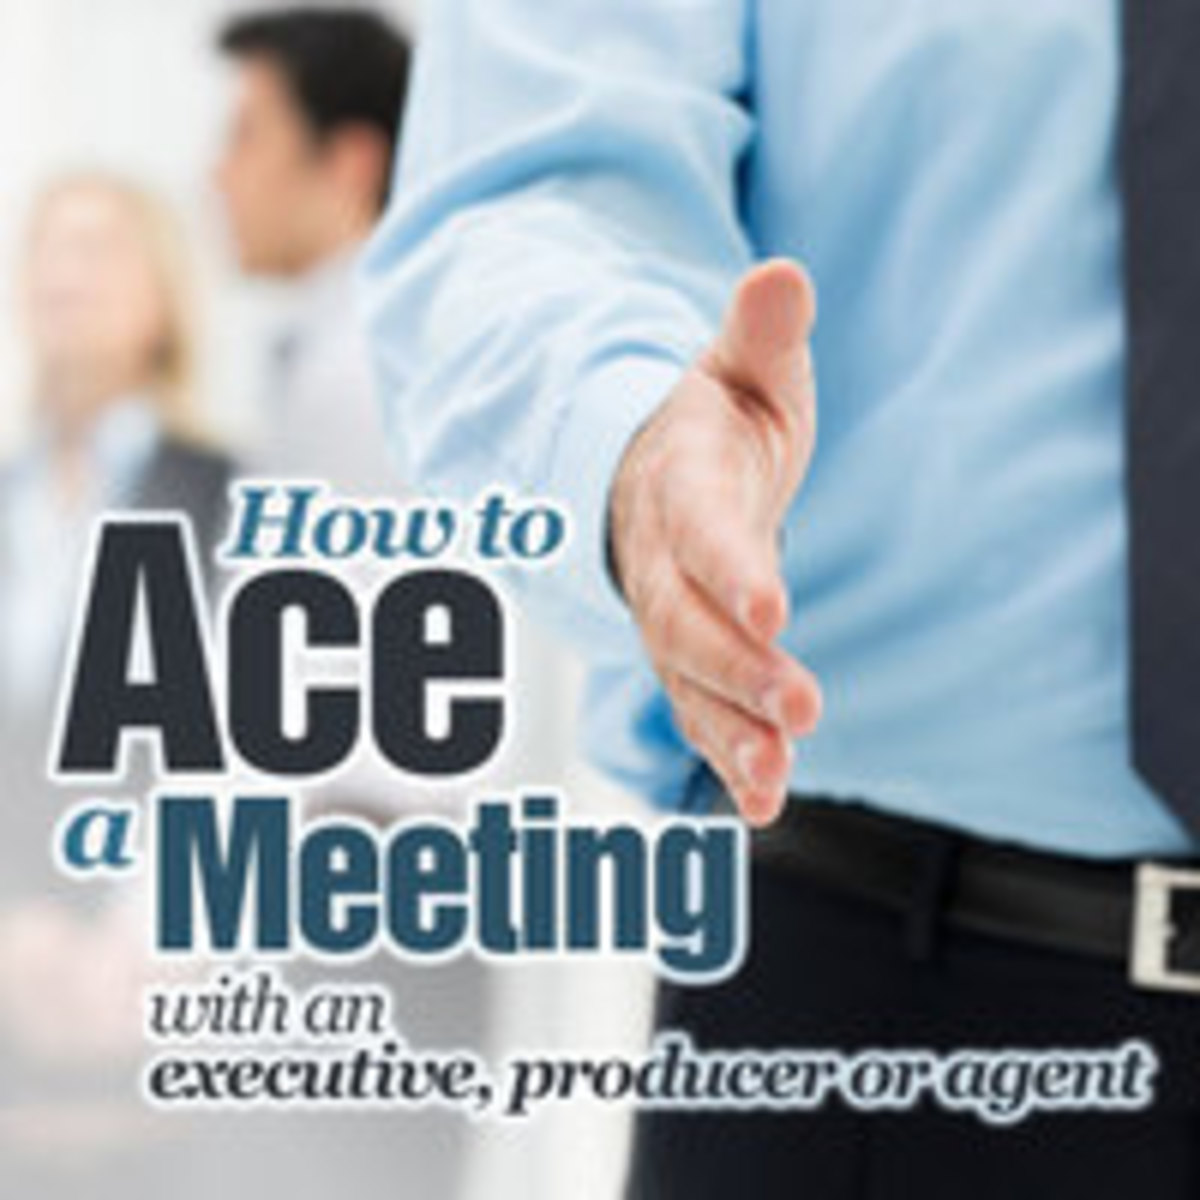 ws_acethemeeting-500_small